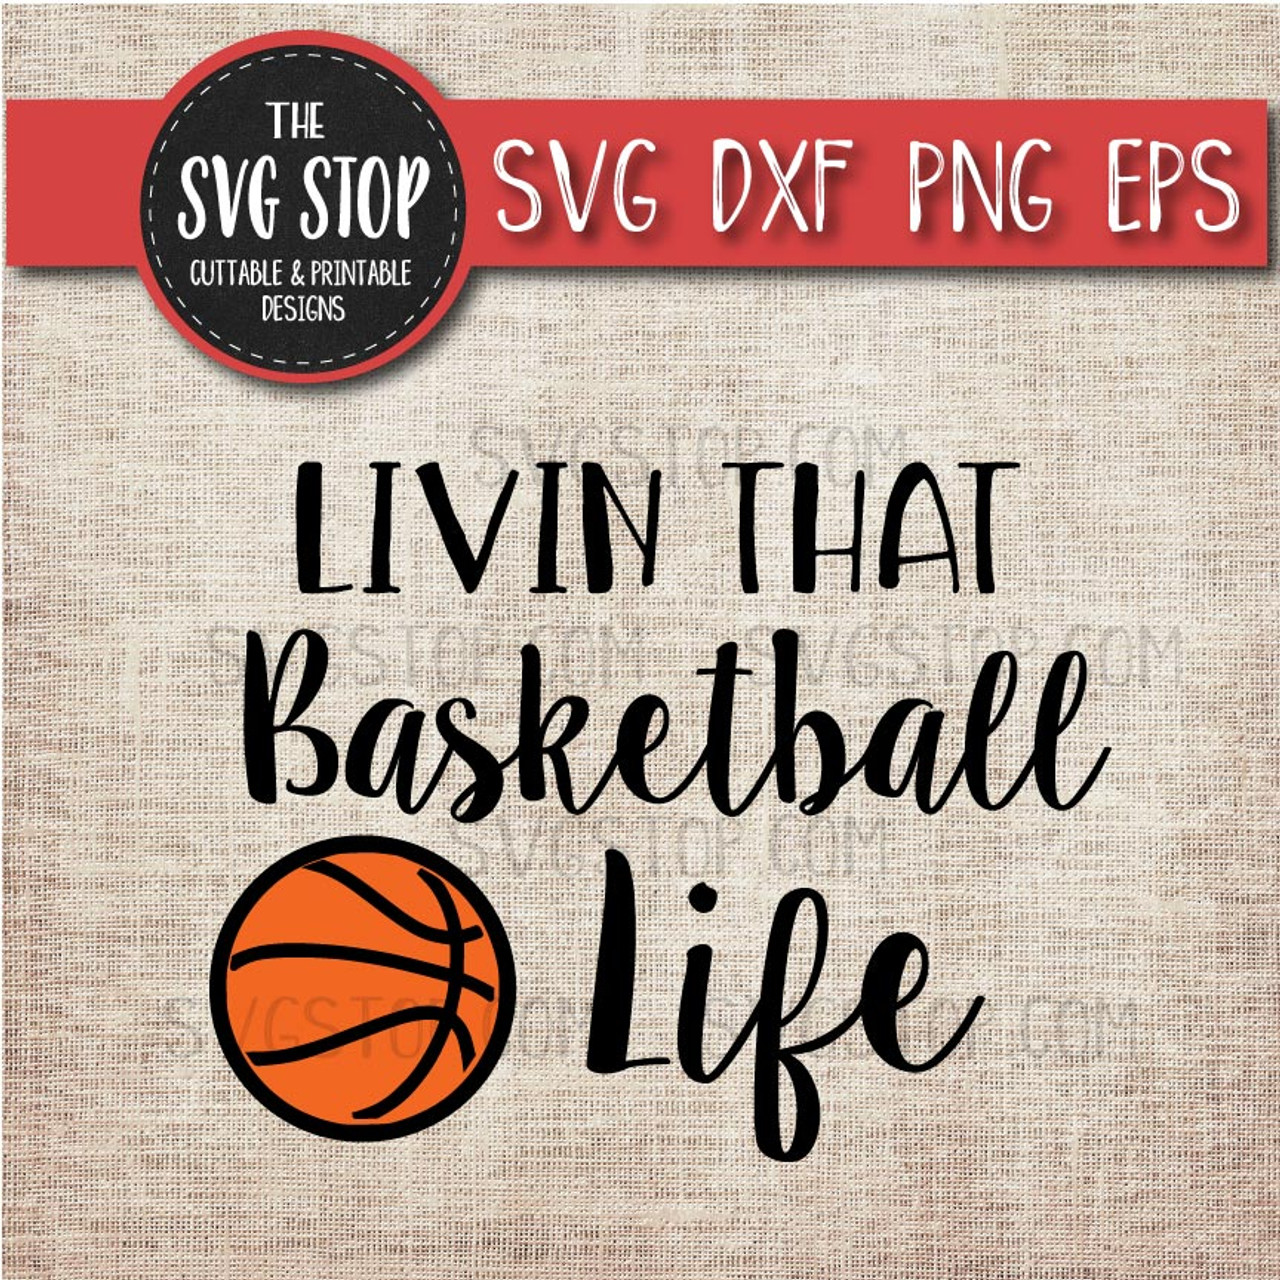 Livin That Basketball Life Svg Cut File Clipart The Svg Stop